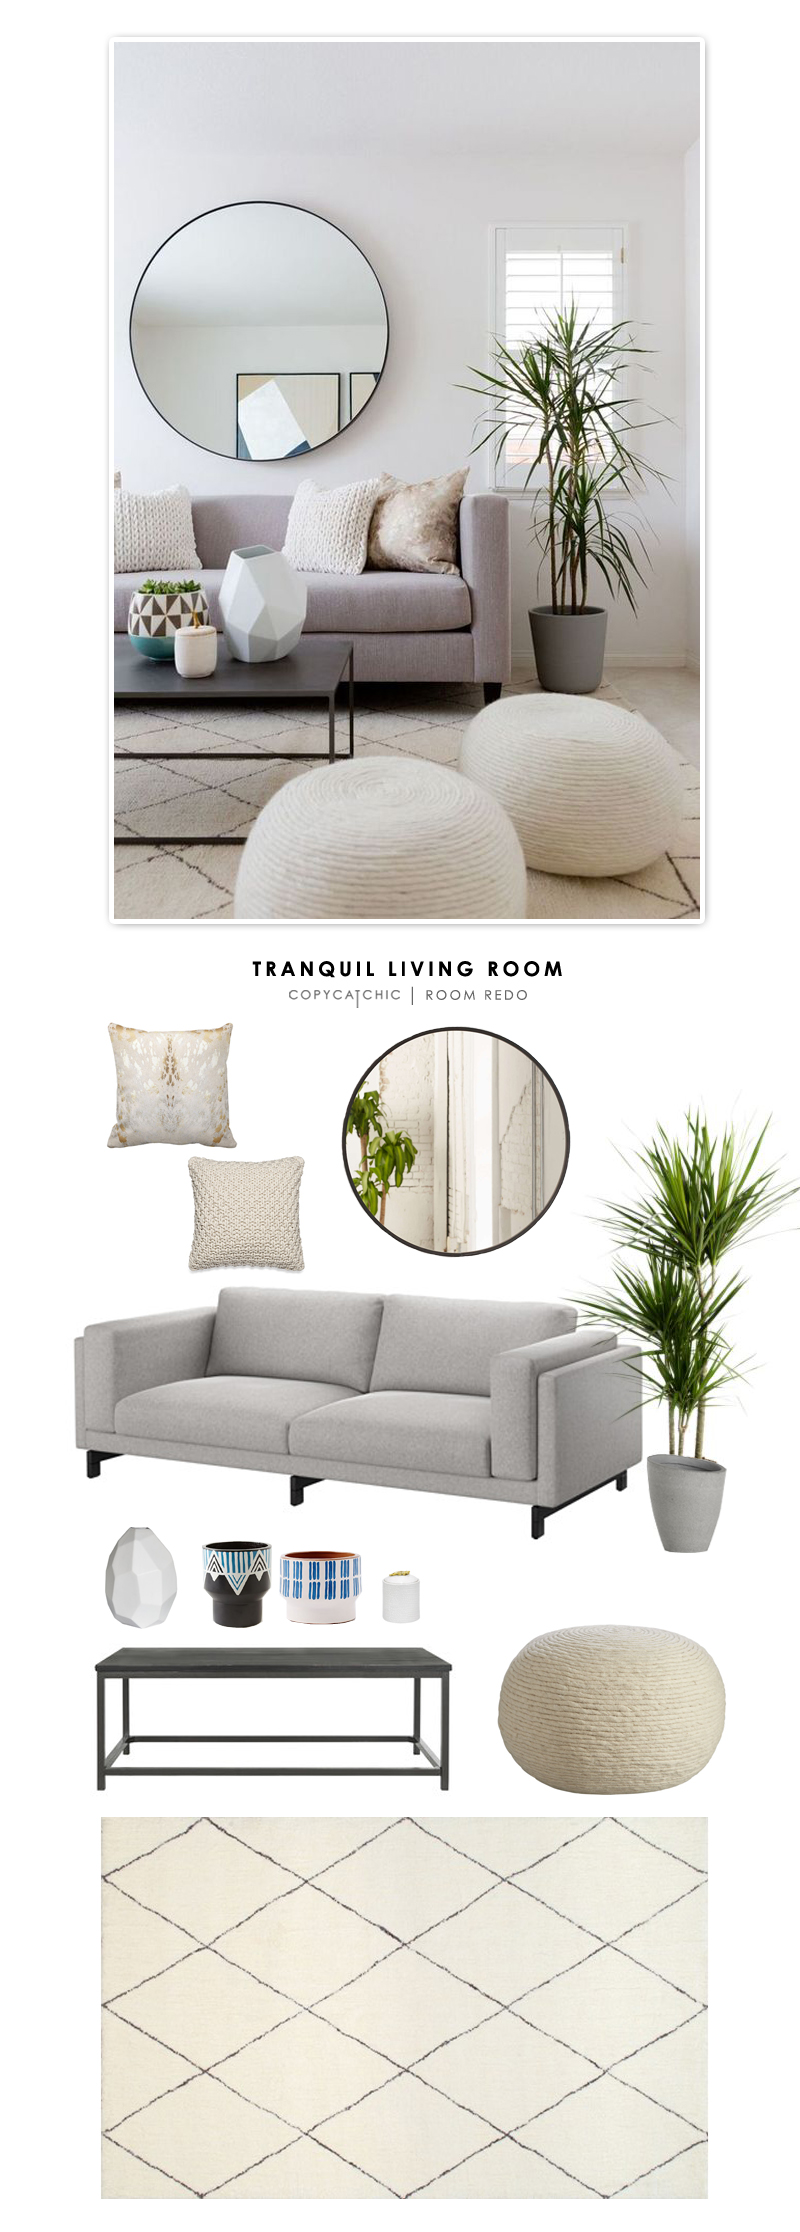 Copy cat chic room redo tranquil living room copycatchic for Tranquil living room